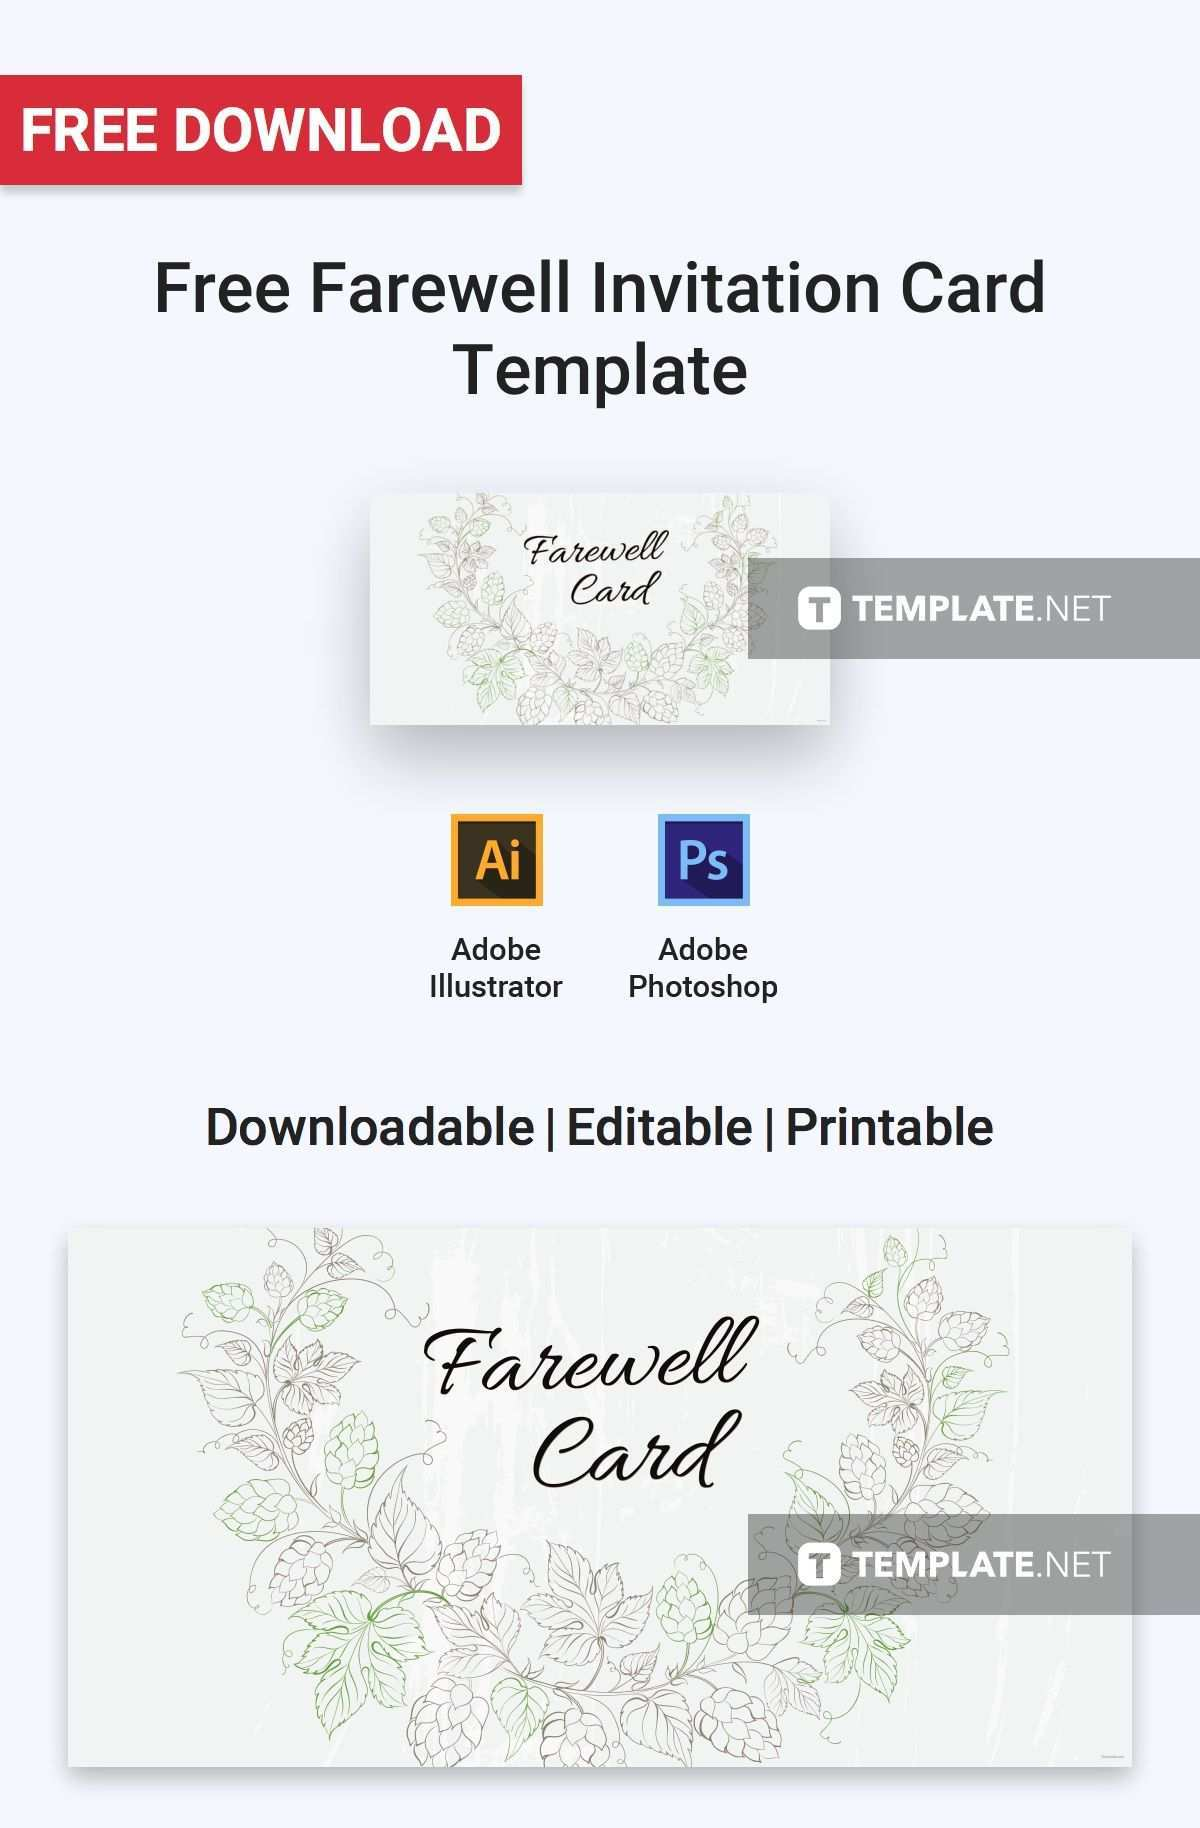 68 Free Farewell Card Templates Free Download Photo for Farewell Card Templates Free Download